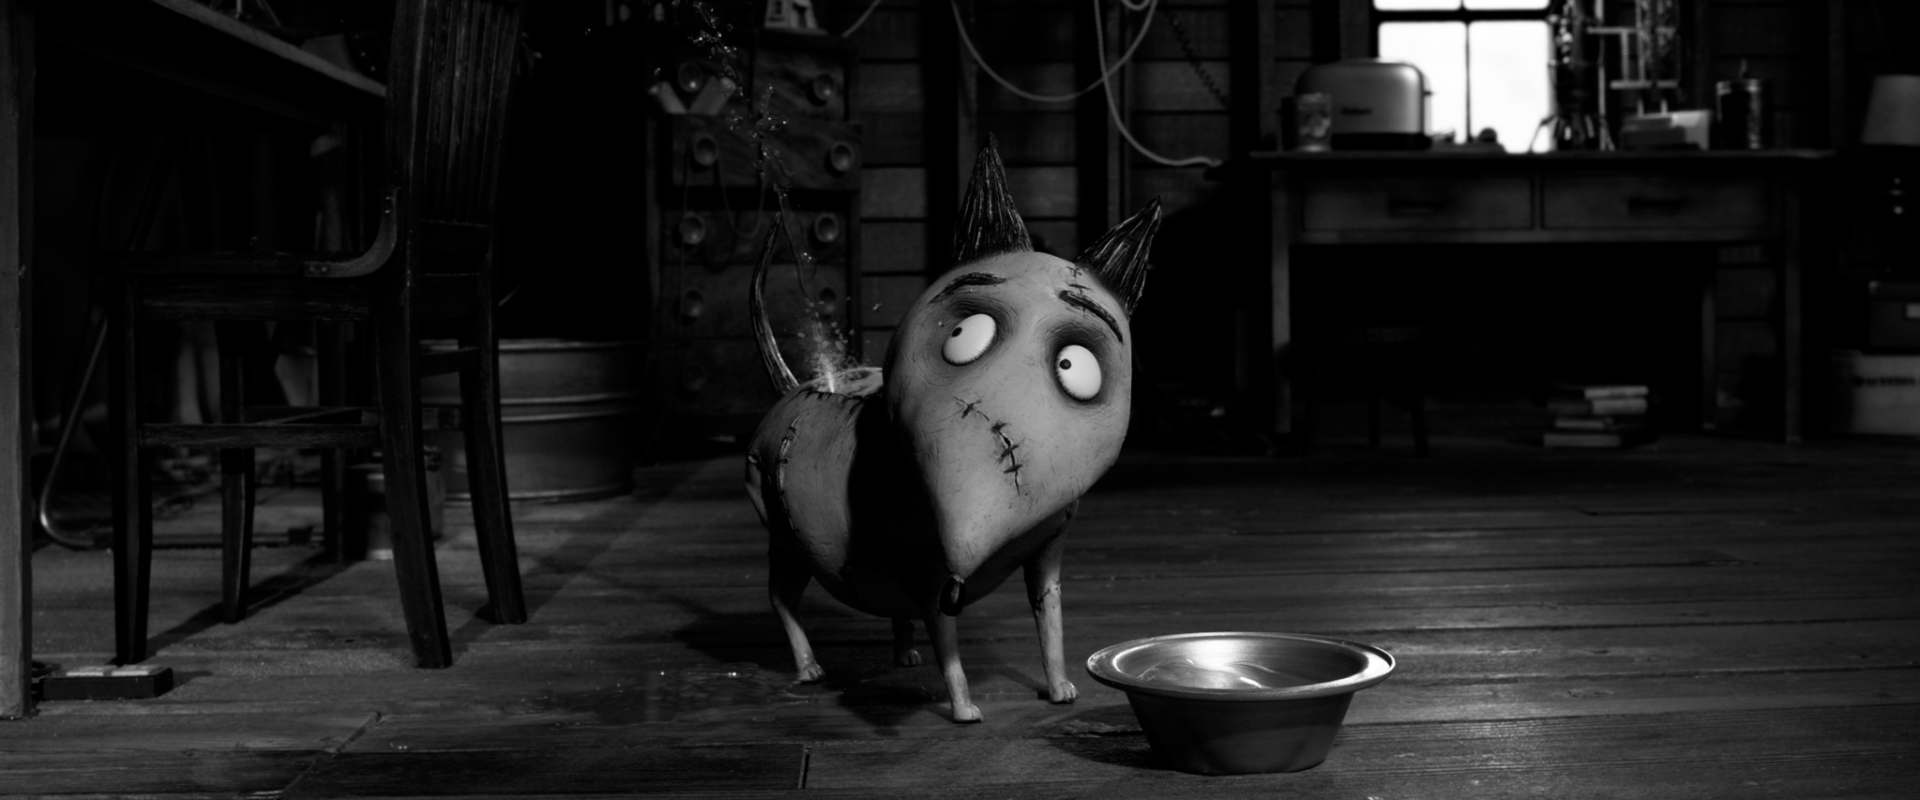 Watch Frankenweenie On Netflix Today Netflixmovies Com